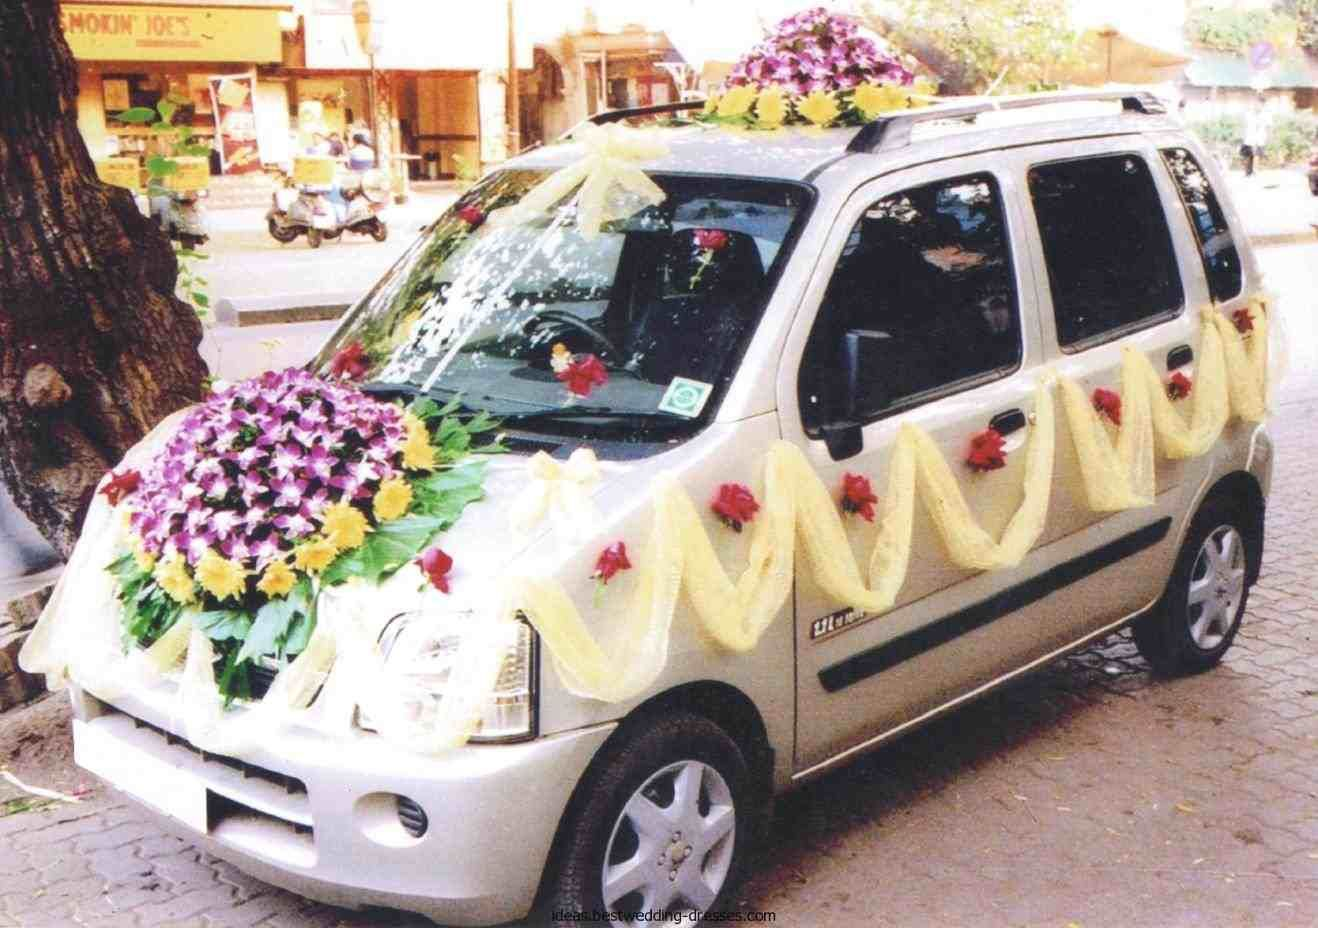 Wedding decorations for car  Pin by Bhadresh on Car decorations  Pinterest  Wedding car